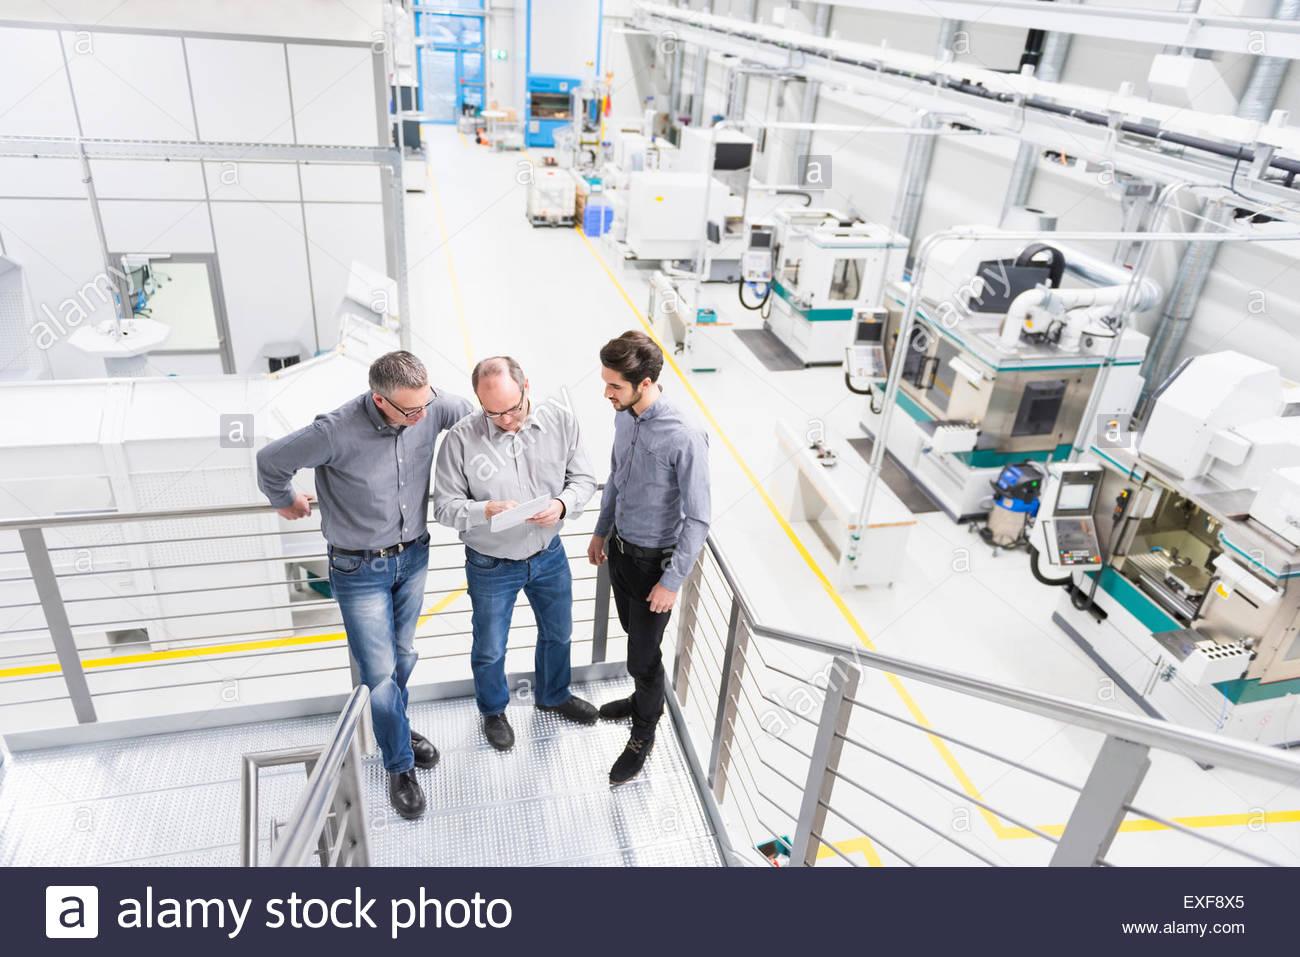 Engineers discussing notes on factory stairway - Stock Image